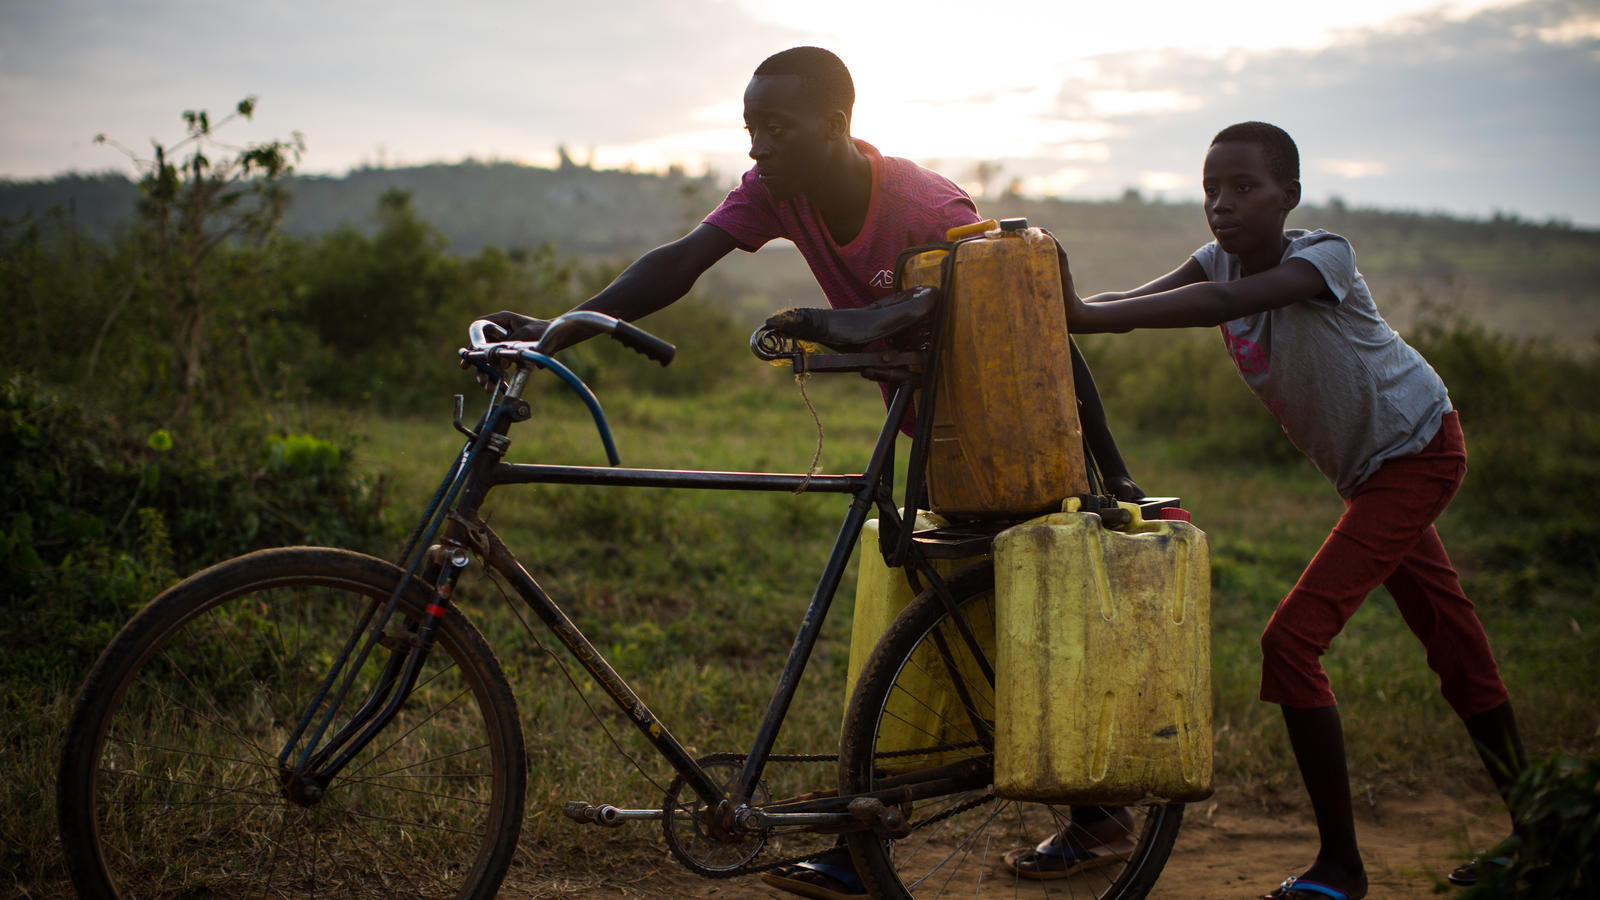 Jean-Bosco and Claire push their bike, now laden with jerrycans of water, back home, in Kibungo, Rwanda, February 2018.